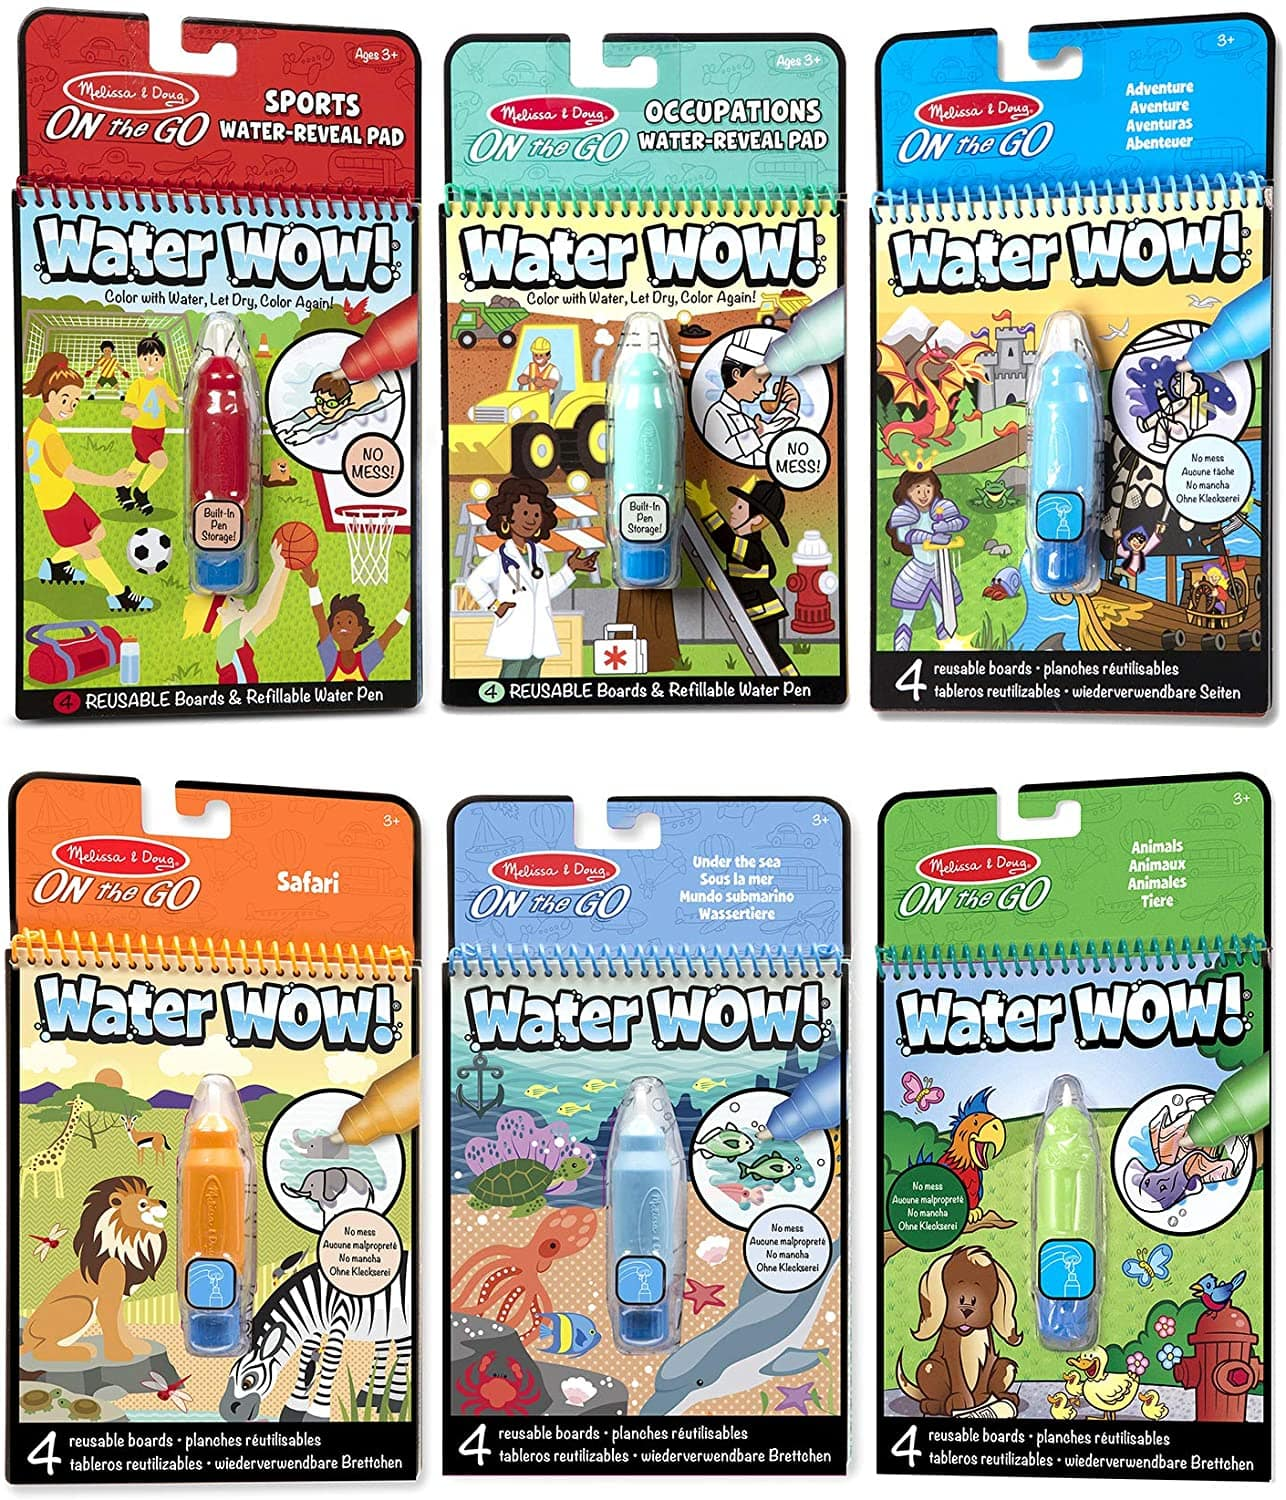 Melissa & Doug: 6-Pack On The Go Water Wow! $14, 4-Pack Reusable Sticker Pad Bundle $11.18, More + Free Shipping w/ Prime or on $25+